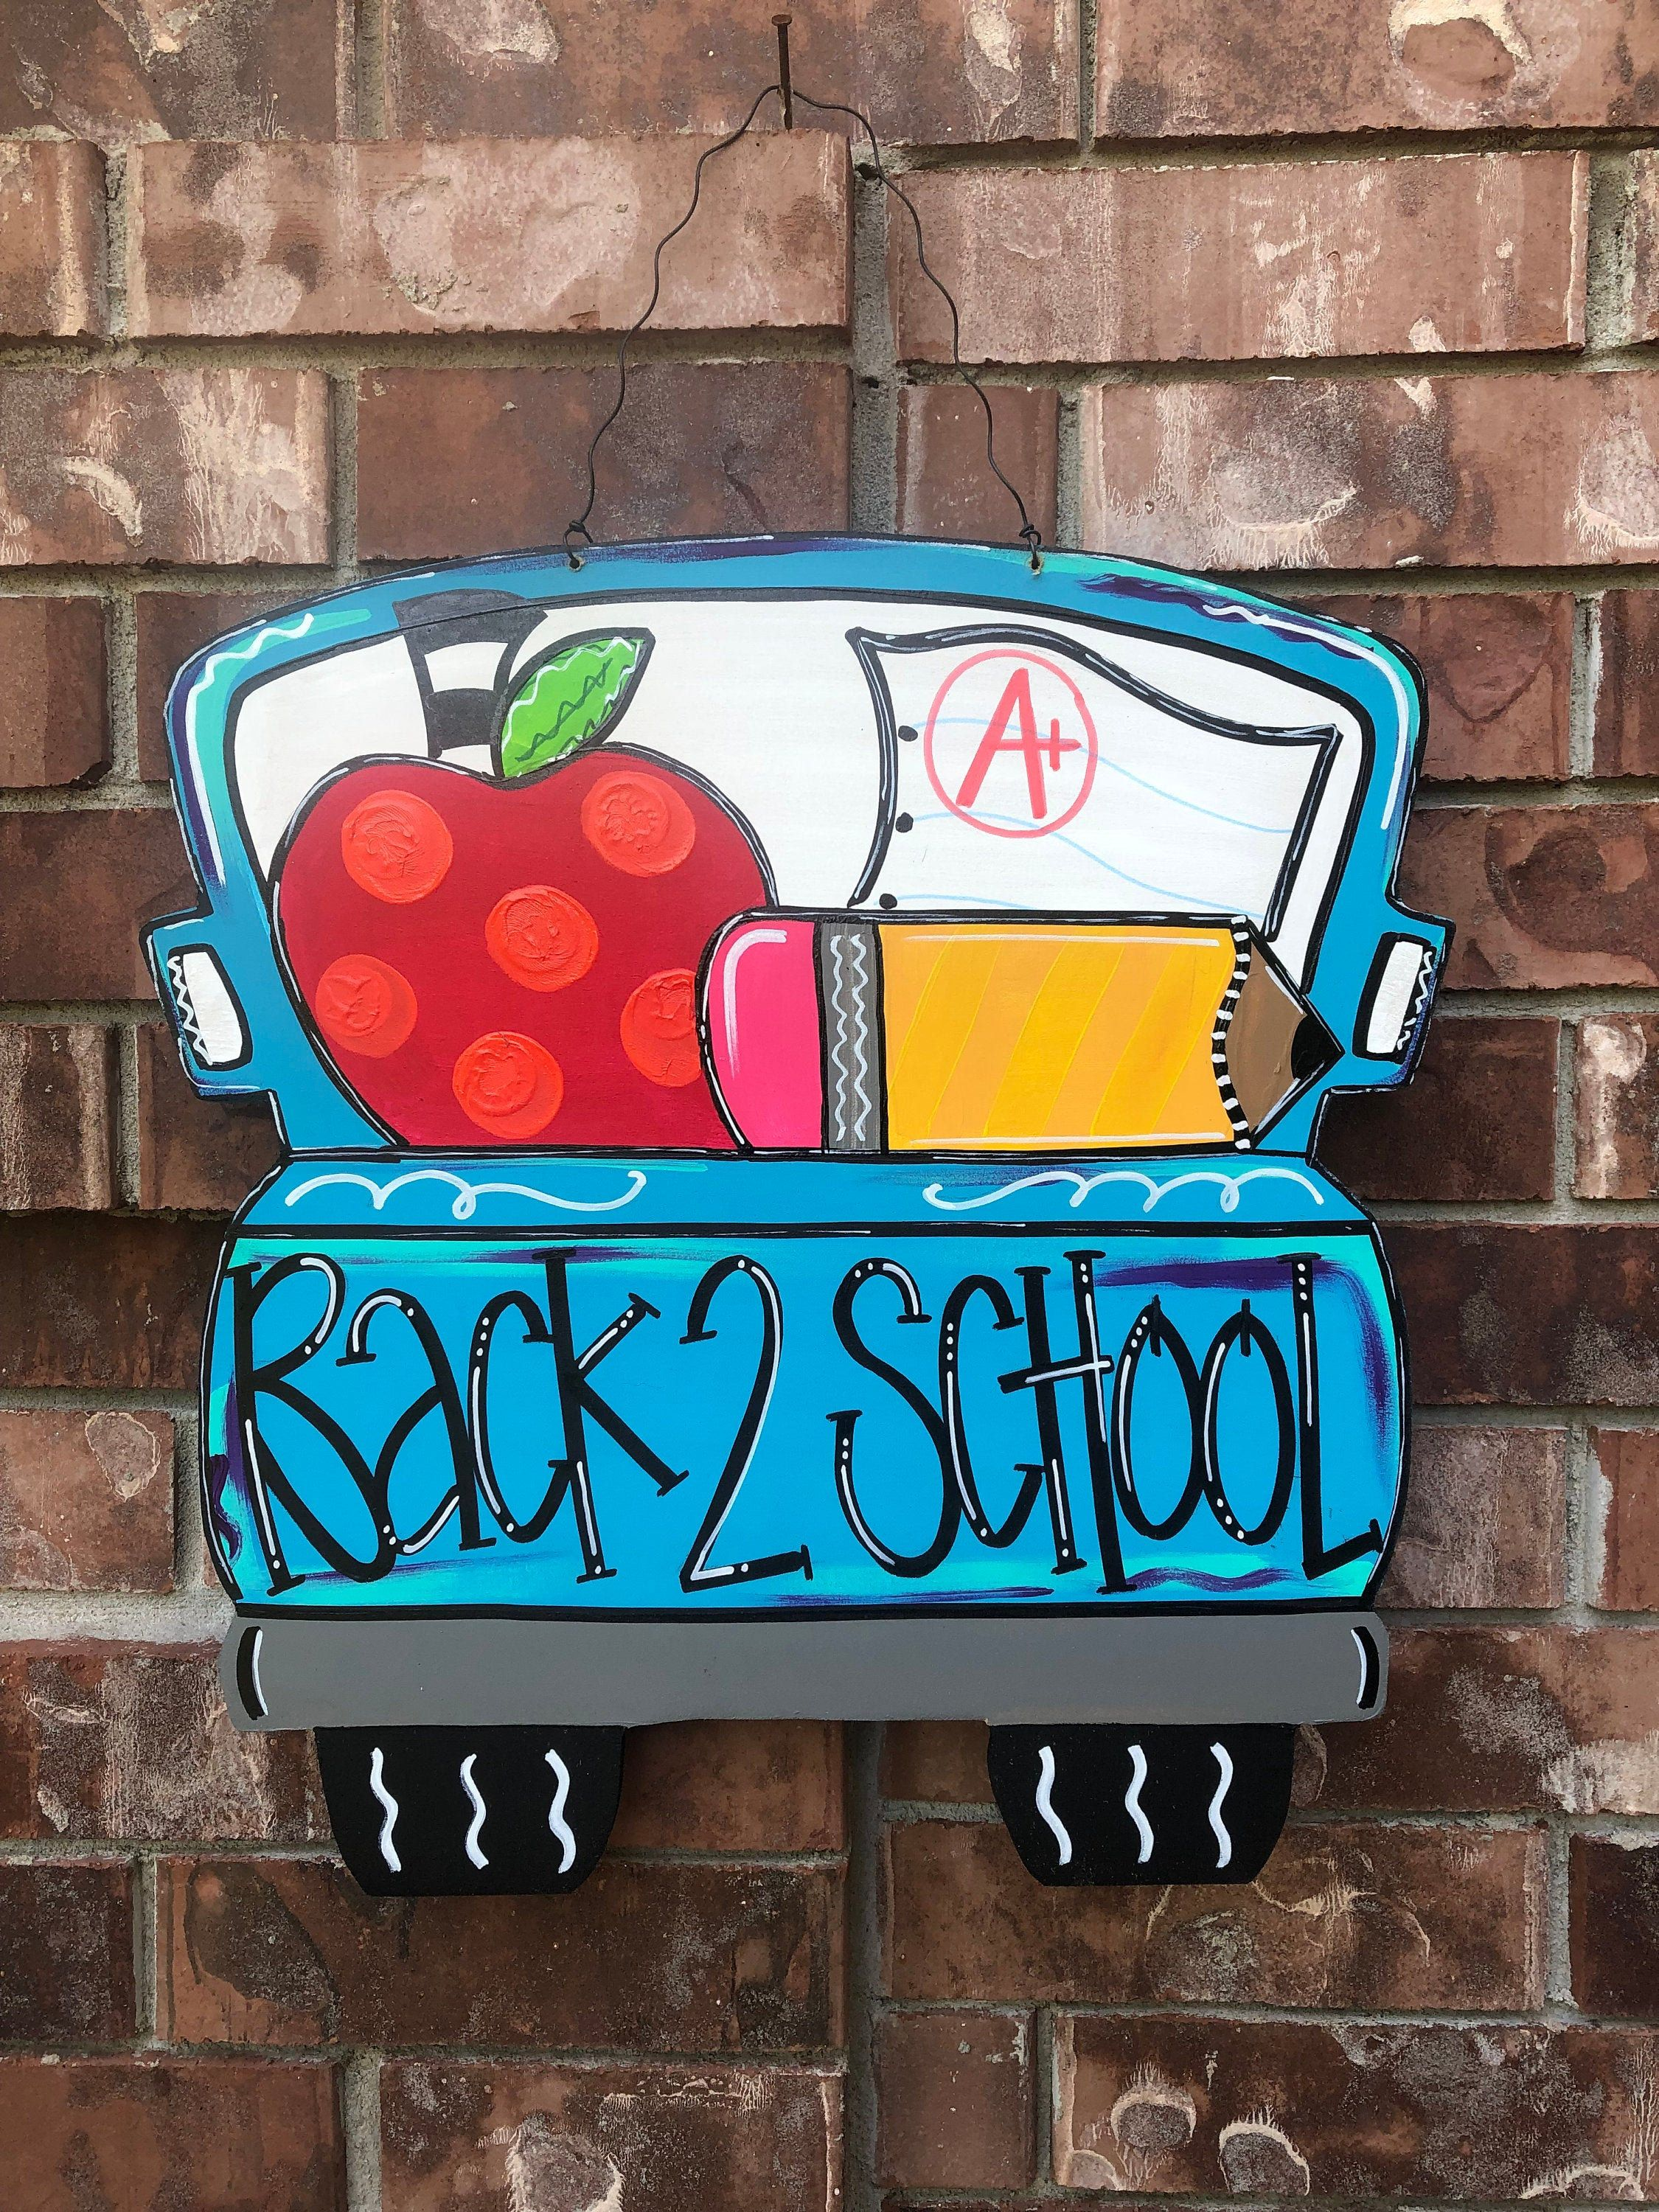 Back to school door hanger, classroom door hanger, back to school wreath, classroom wreath, back to school truck hanger, fall door hanger #falldoordecorationsclassroom